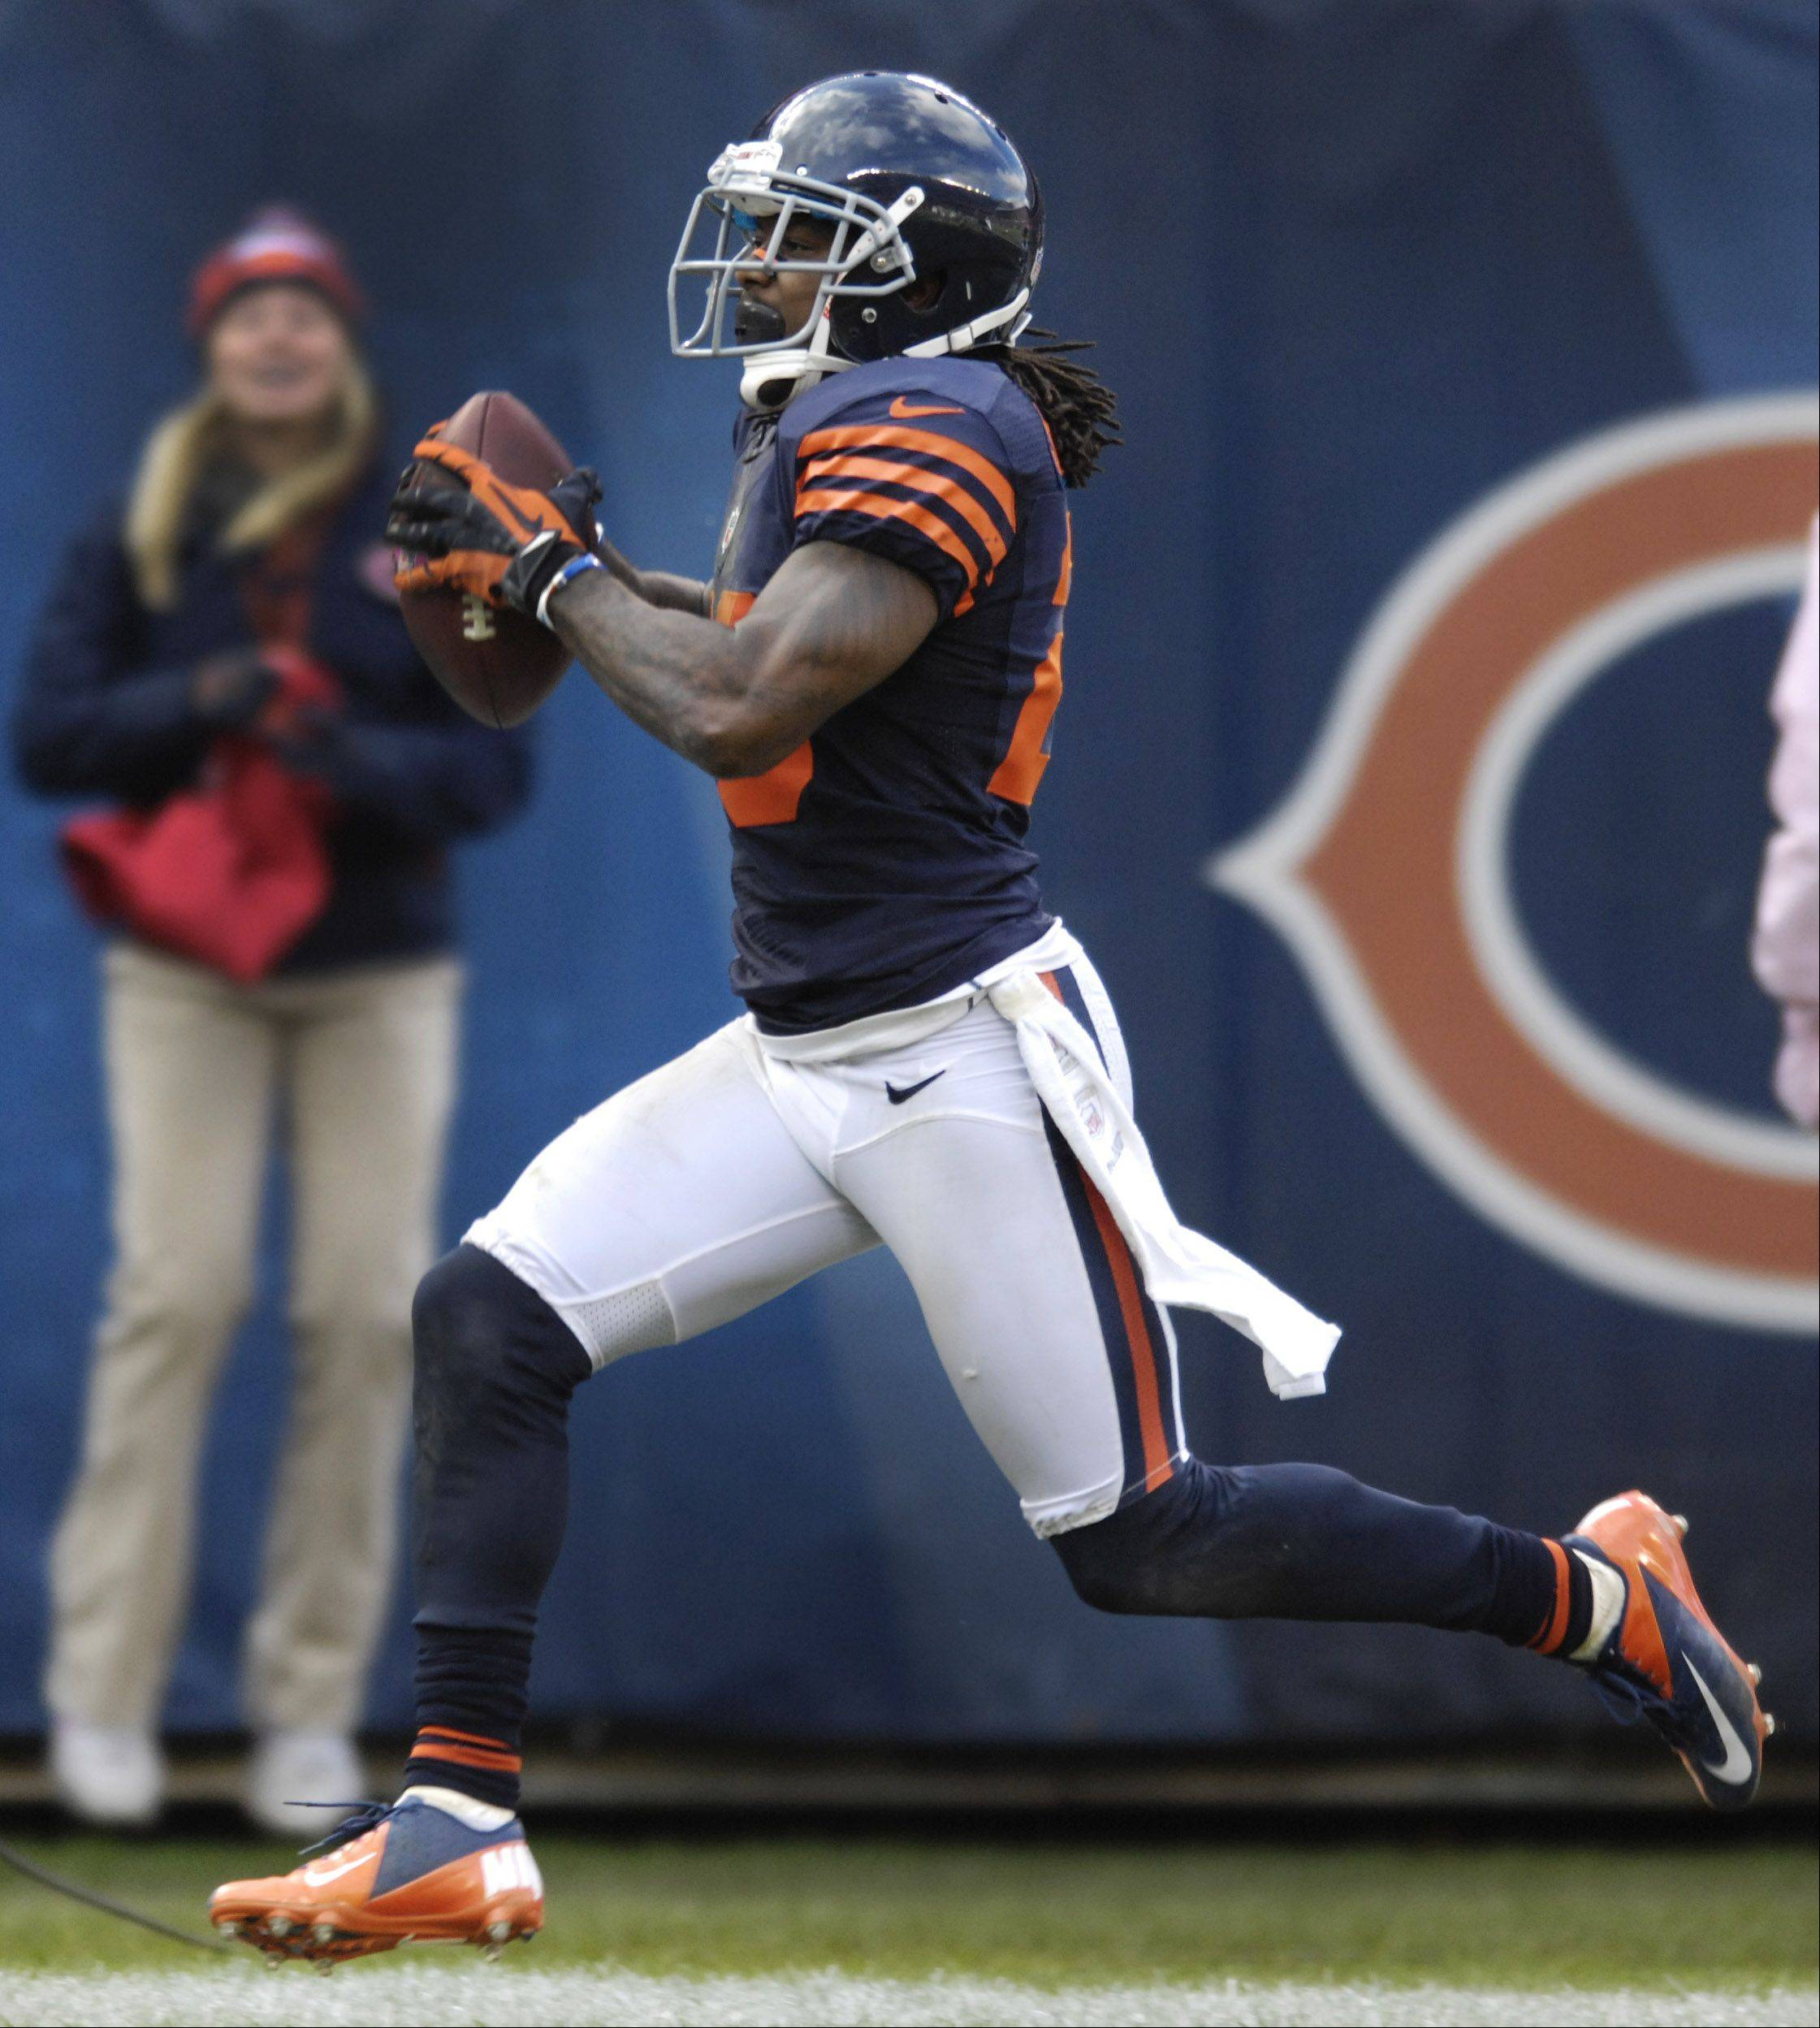 Tim Jennings runs an interception back for a touchdown to give the Bears a 20-19 late in the fourth quarter of his team's victory Sunday at Soldier Field.